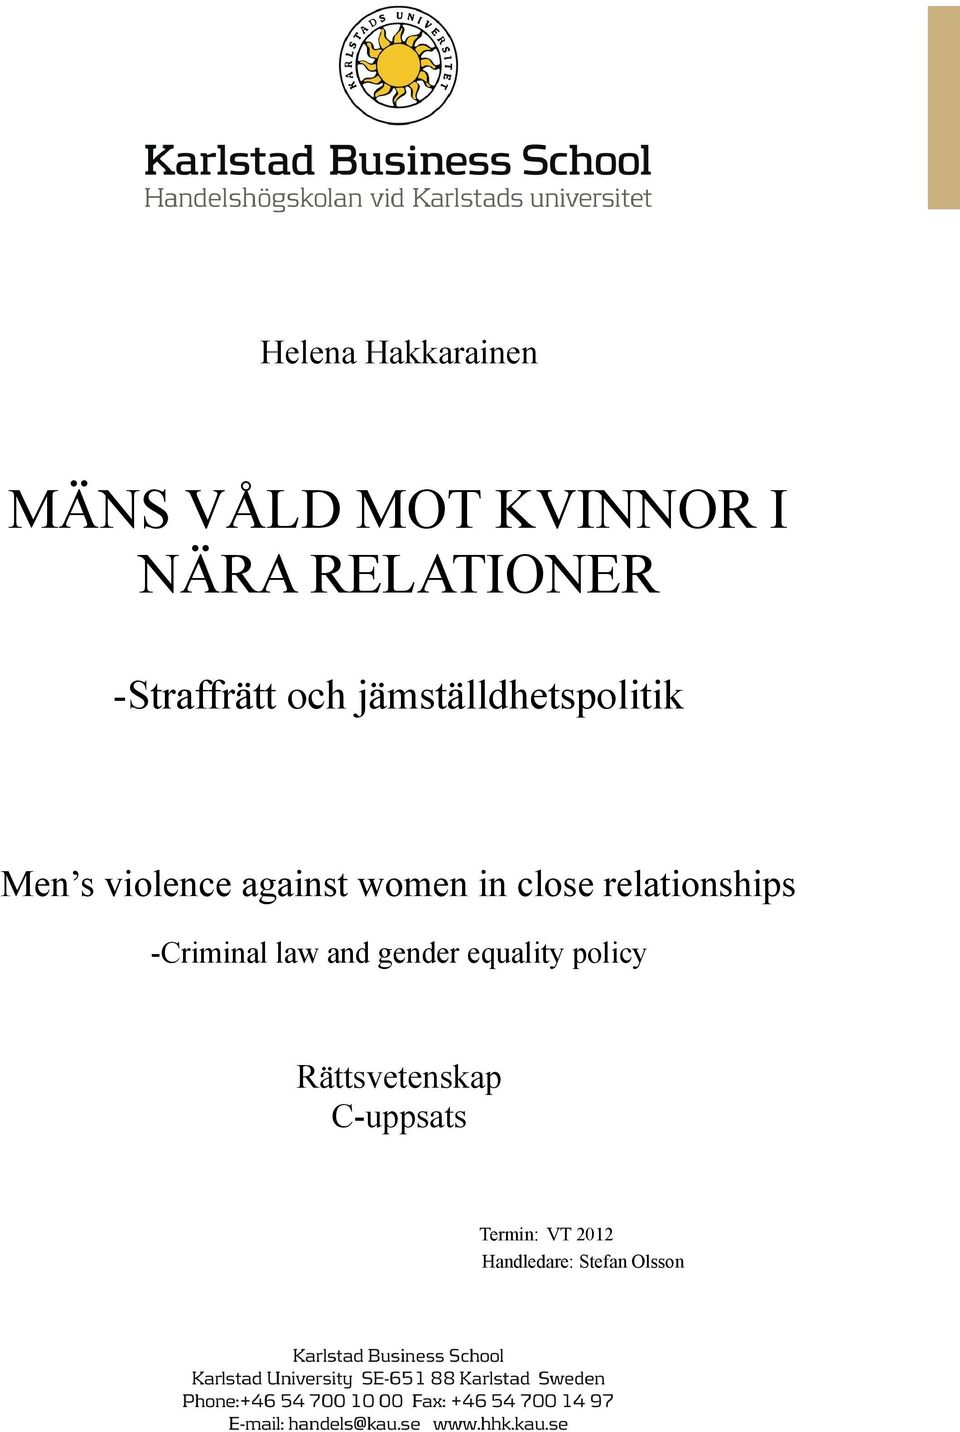 women in close relationships -Criminal law and gender equality